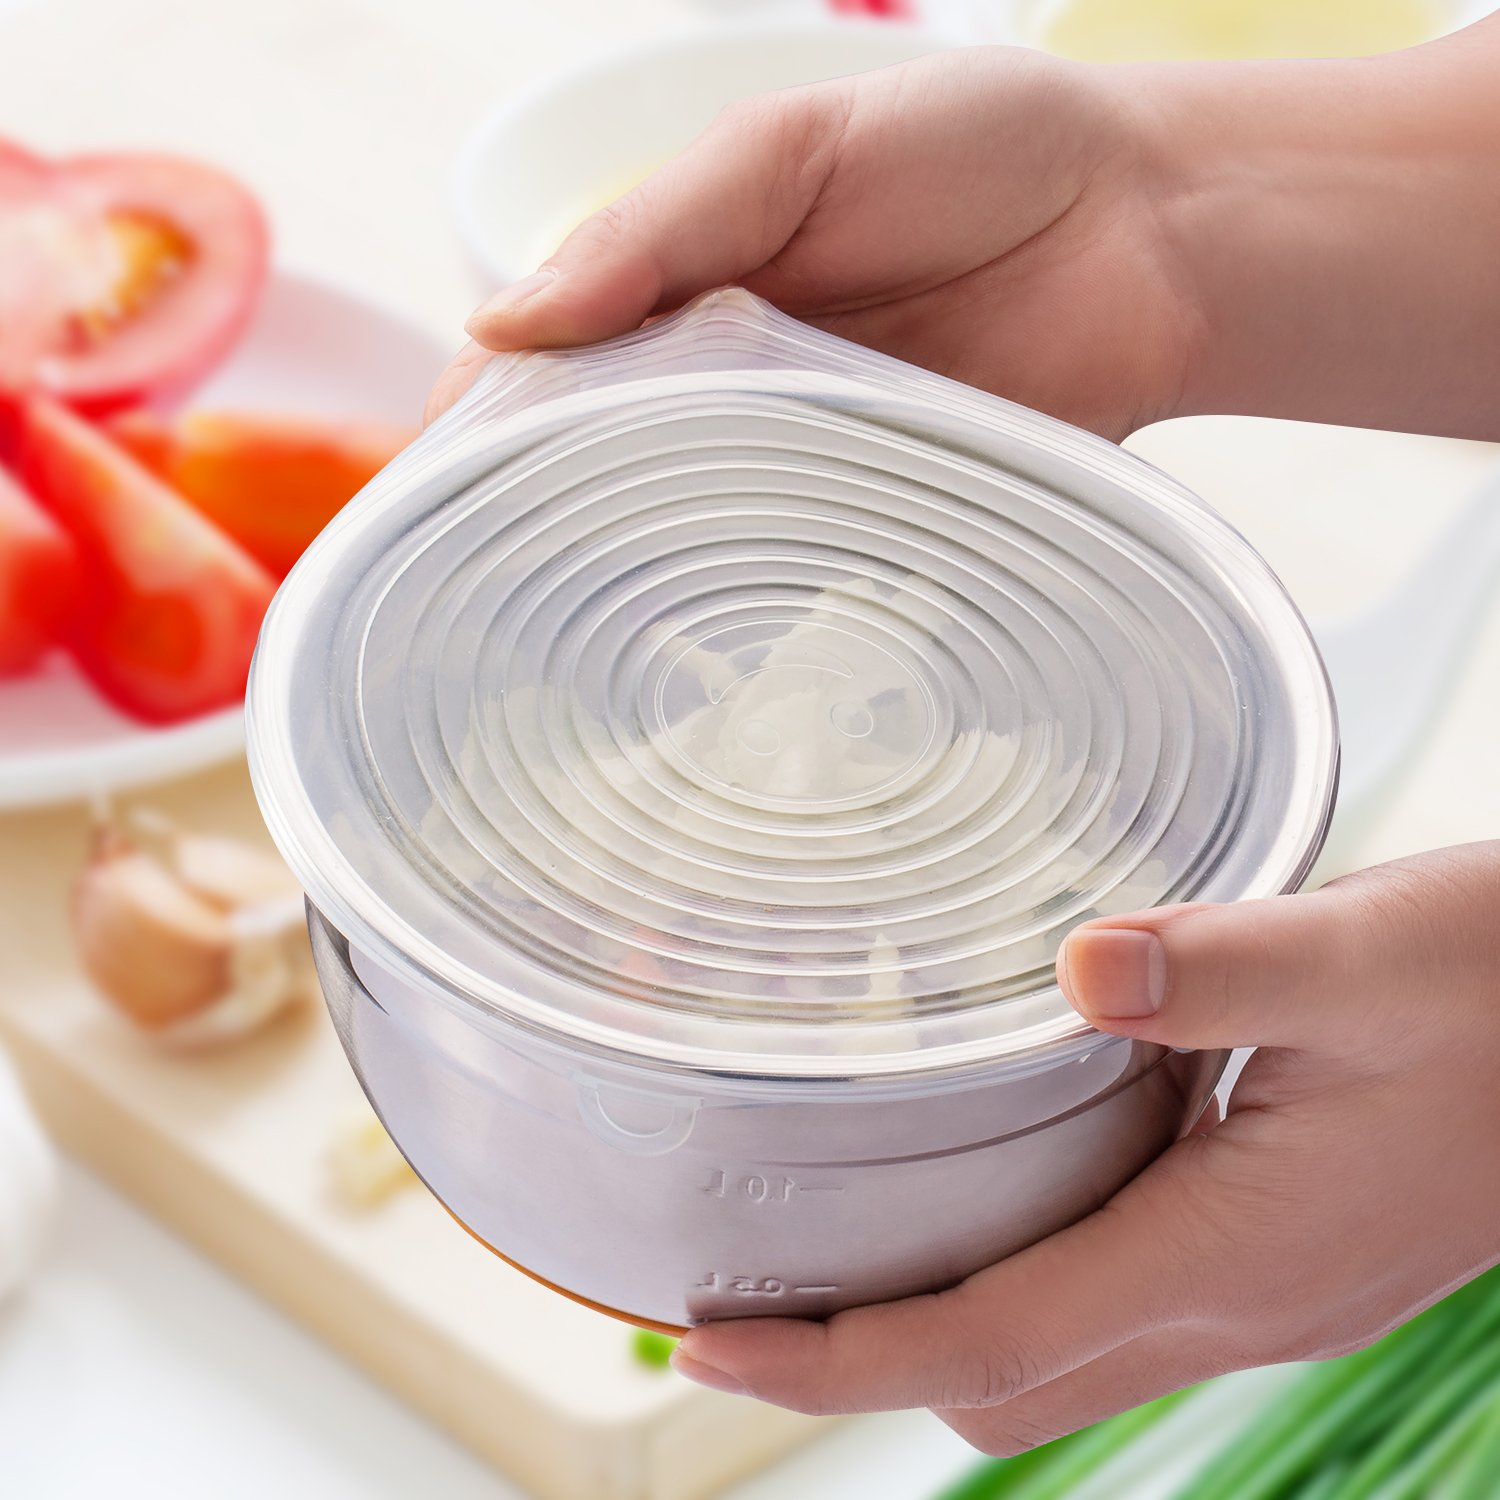 Silicone Stretch Lids, 6-Pack Various Sizes Cover for Bowl by i-Kawachi (Image #5)